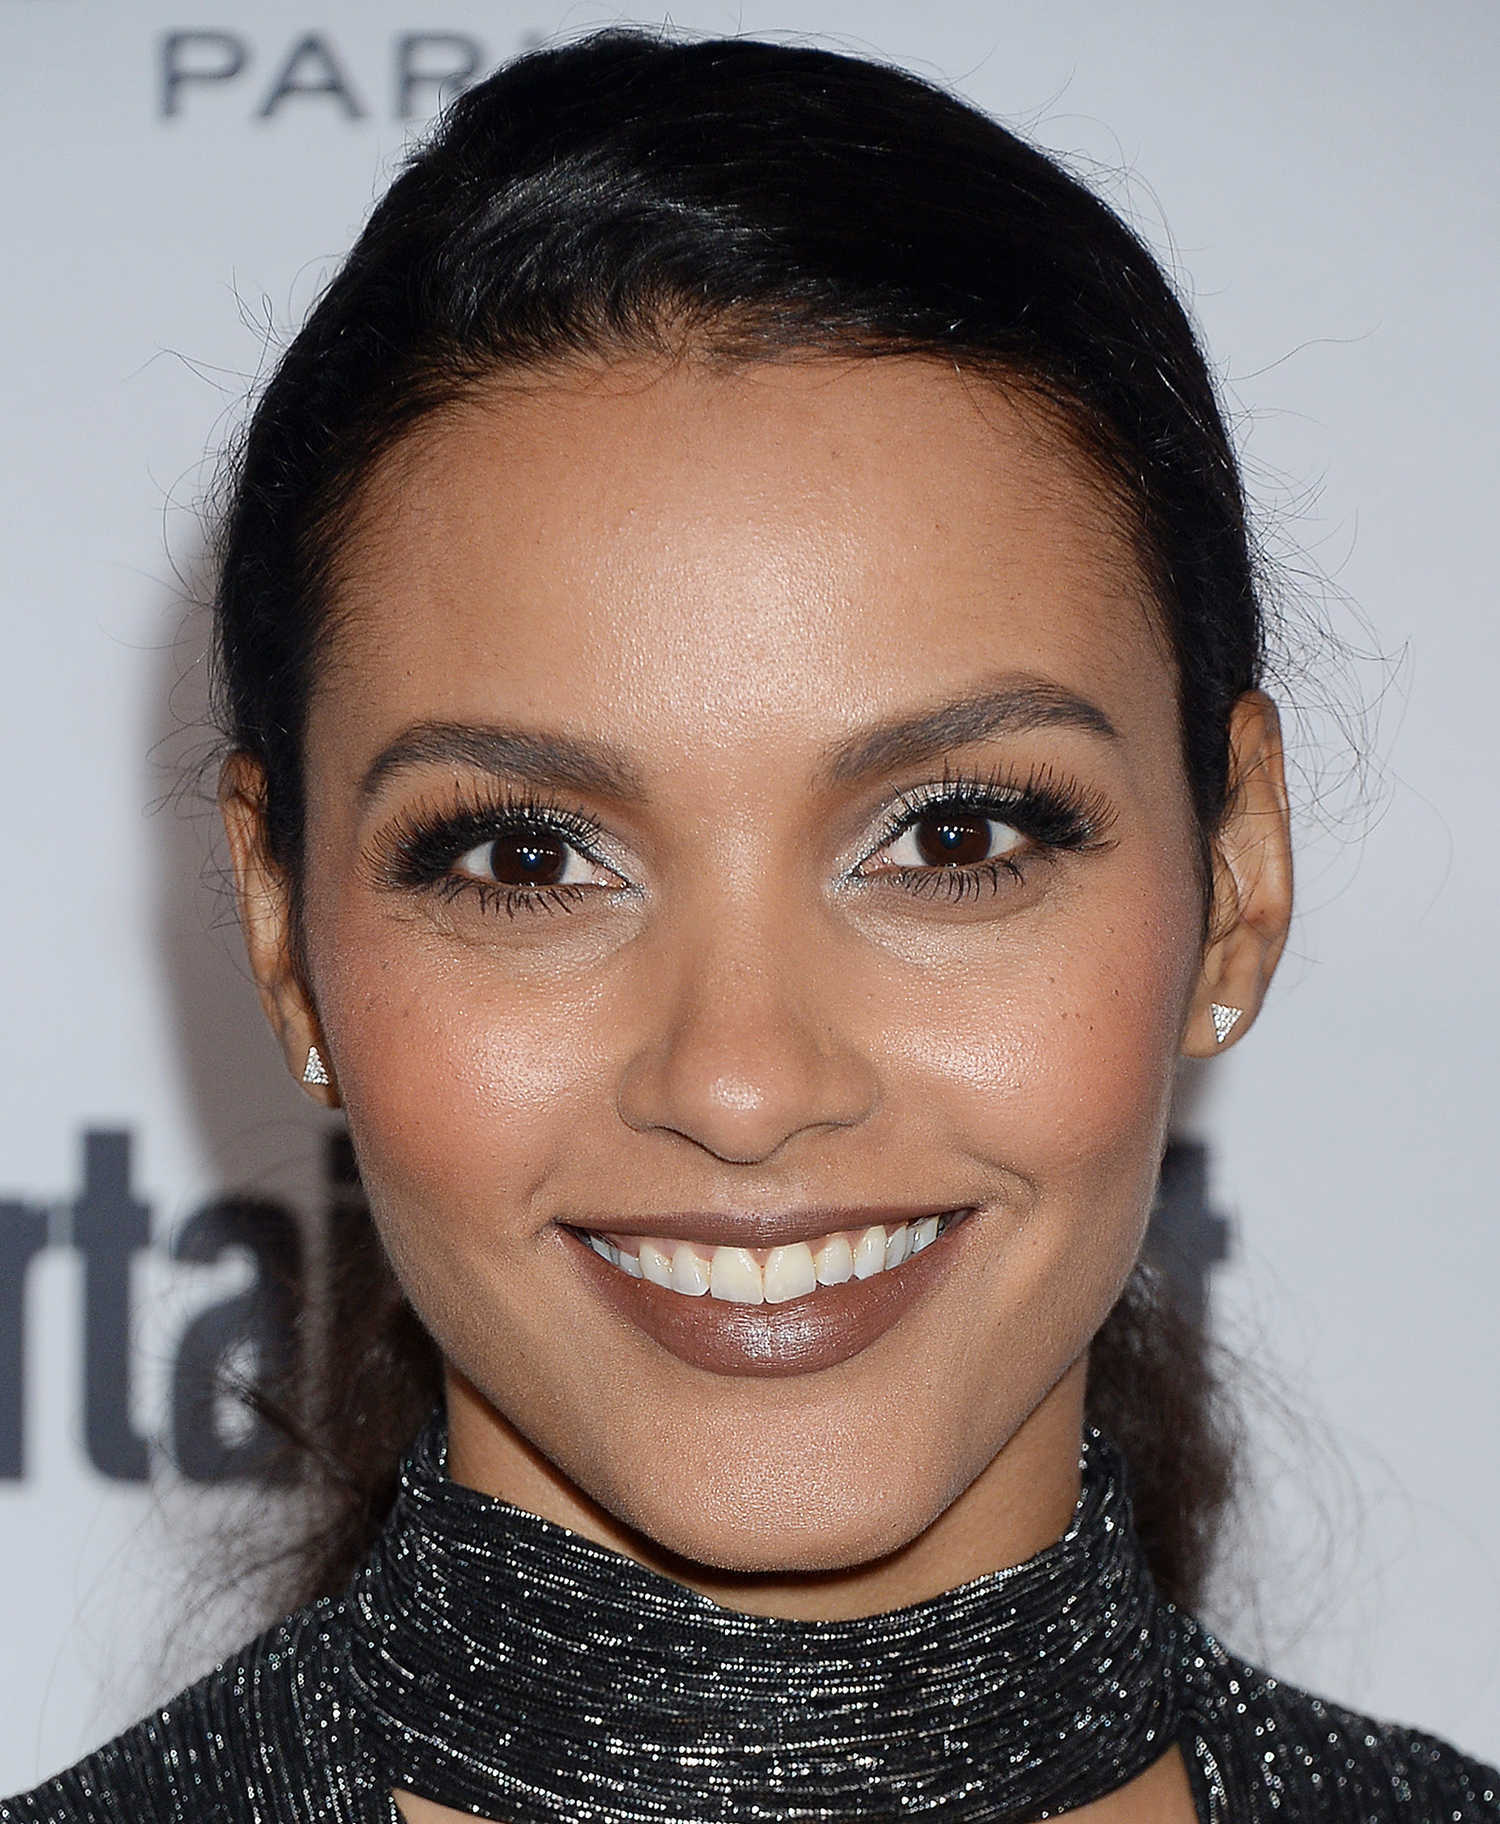 Weekly Address >> Jessica Lucas at the Entertainment Weekly Pre-Emmy Party in Los Angeles – Celeb Donut